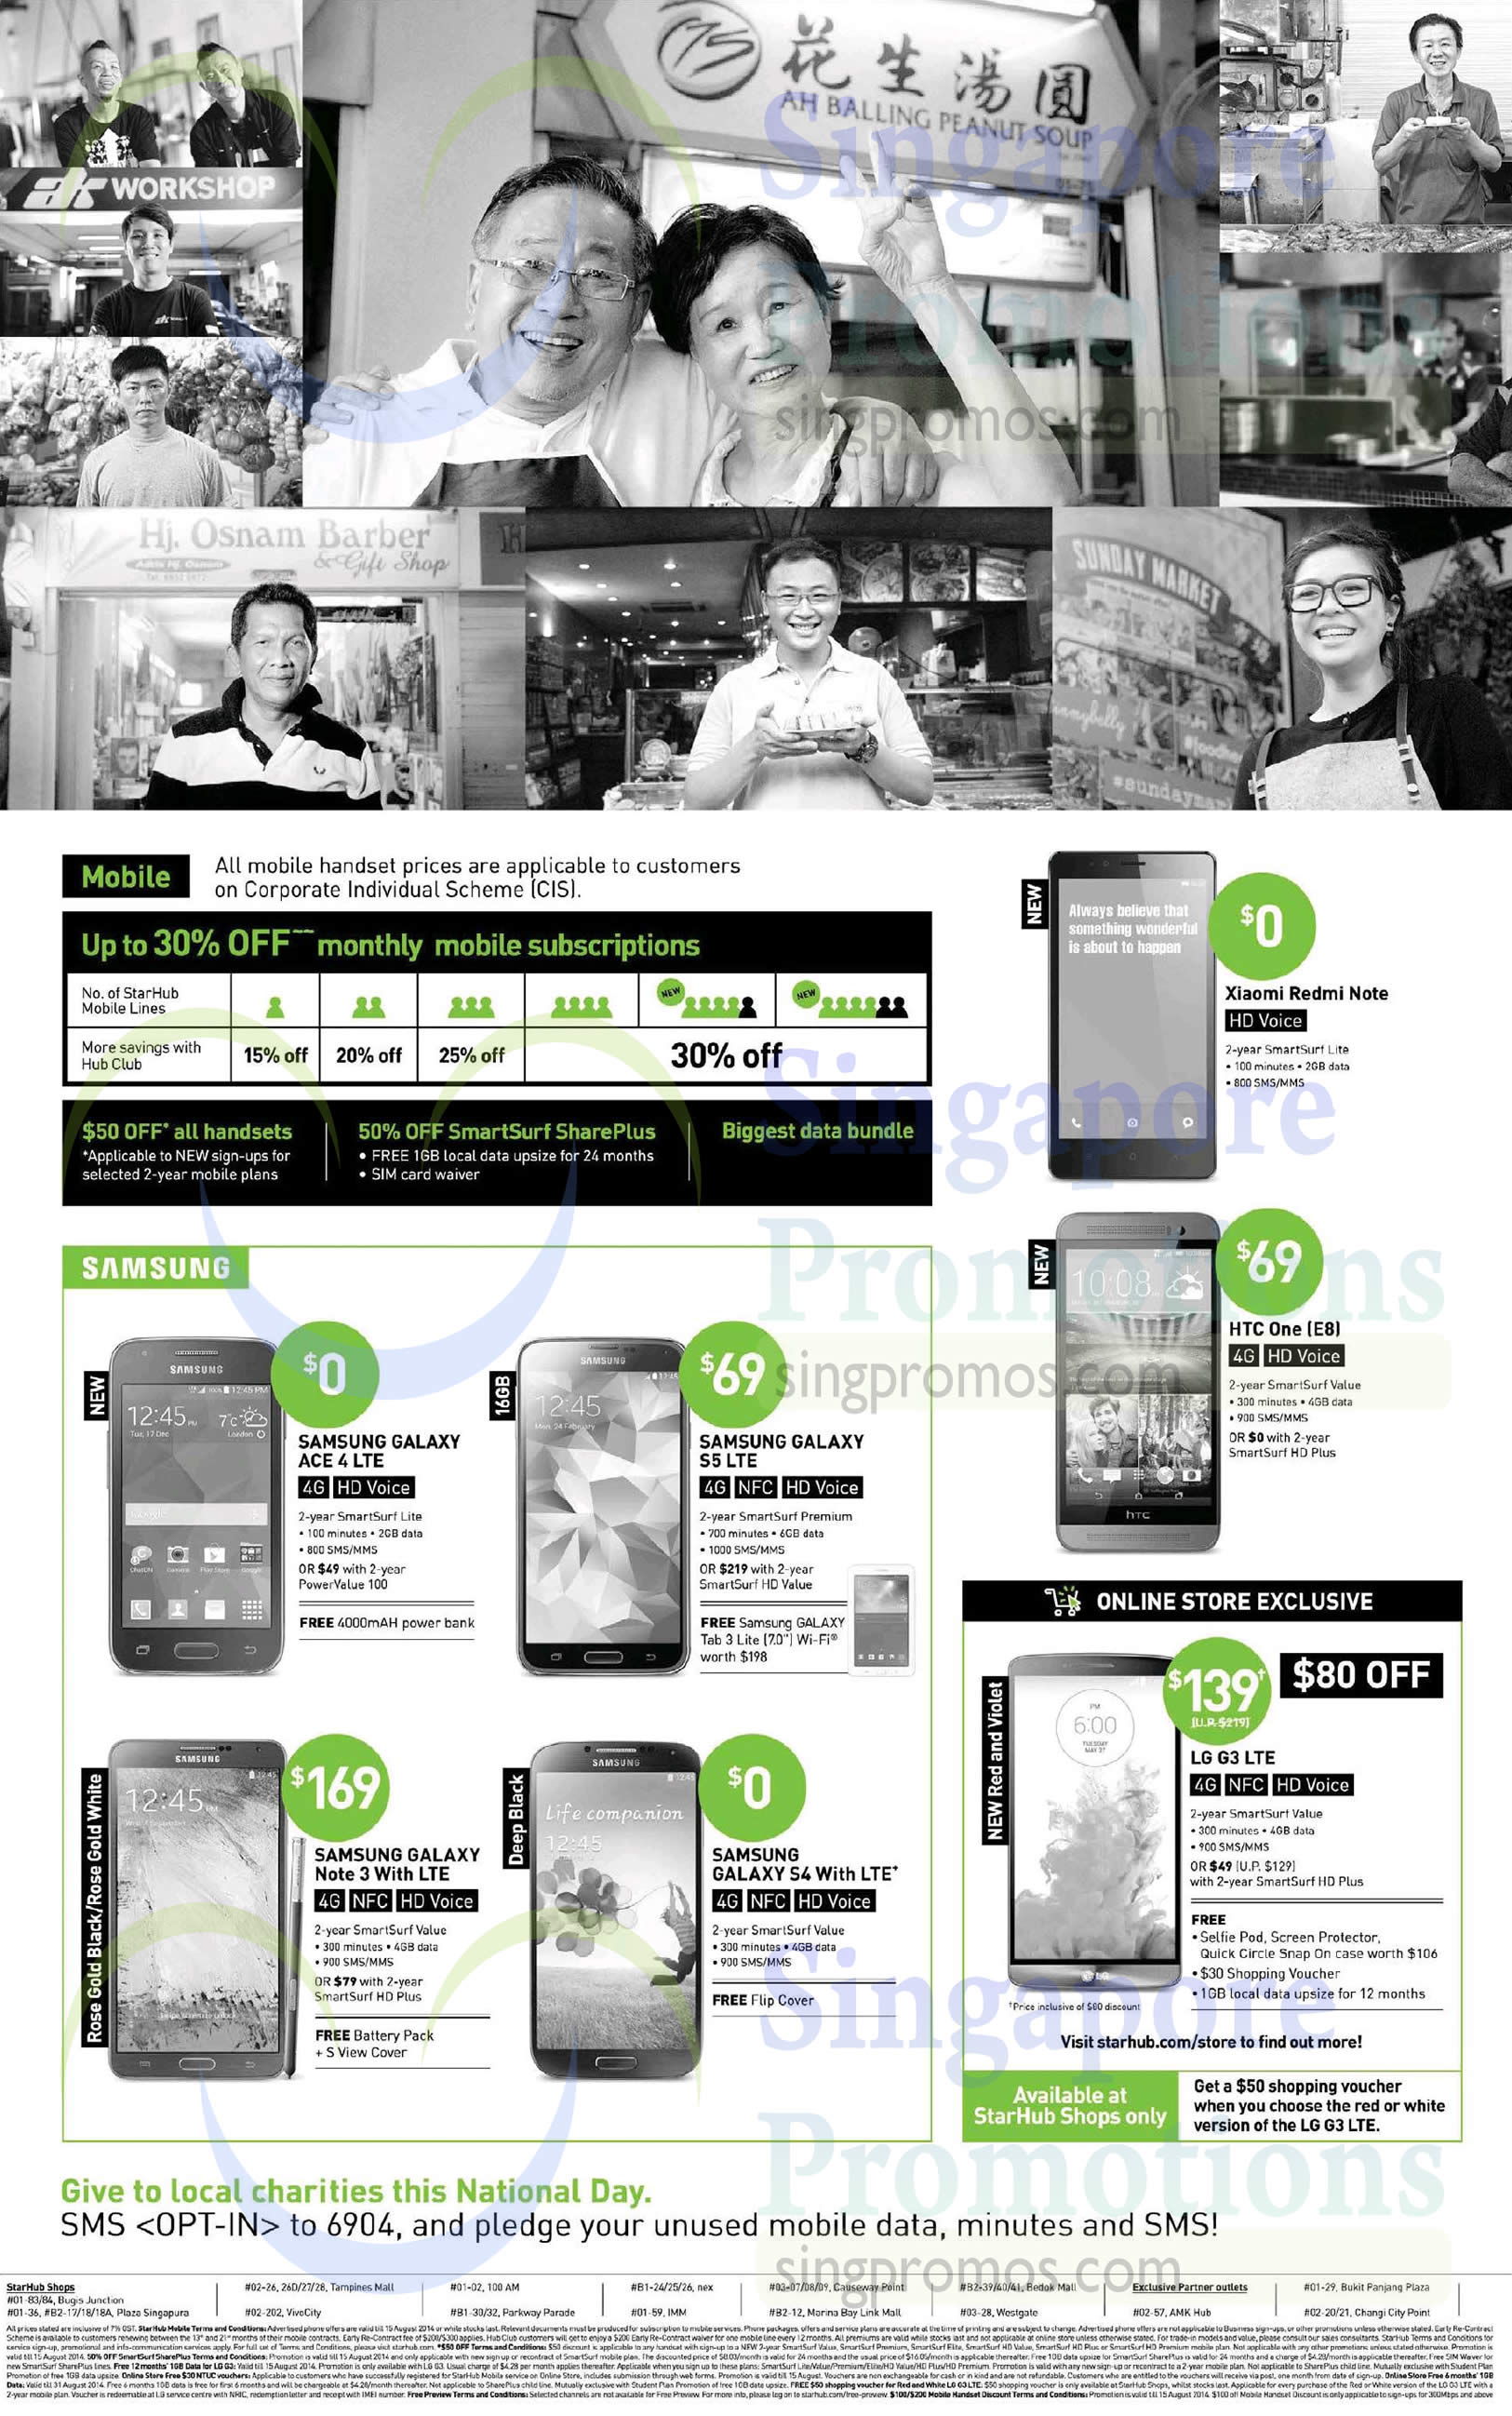 Samsung Galaxy Ace 4, Samsung Galaxy S5, Samsung Galaxy Note 3, Samsung Galaxy Galaxy S4, LG G3, HTC One E8, Xiaomi Redmi Note, Up To 30 Percent Off Monthly Mobile Subscriptions